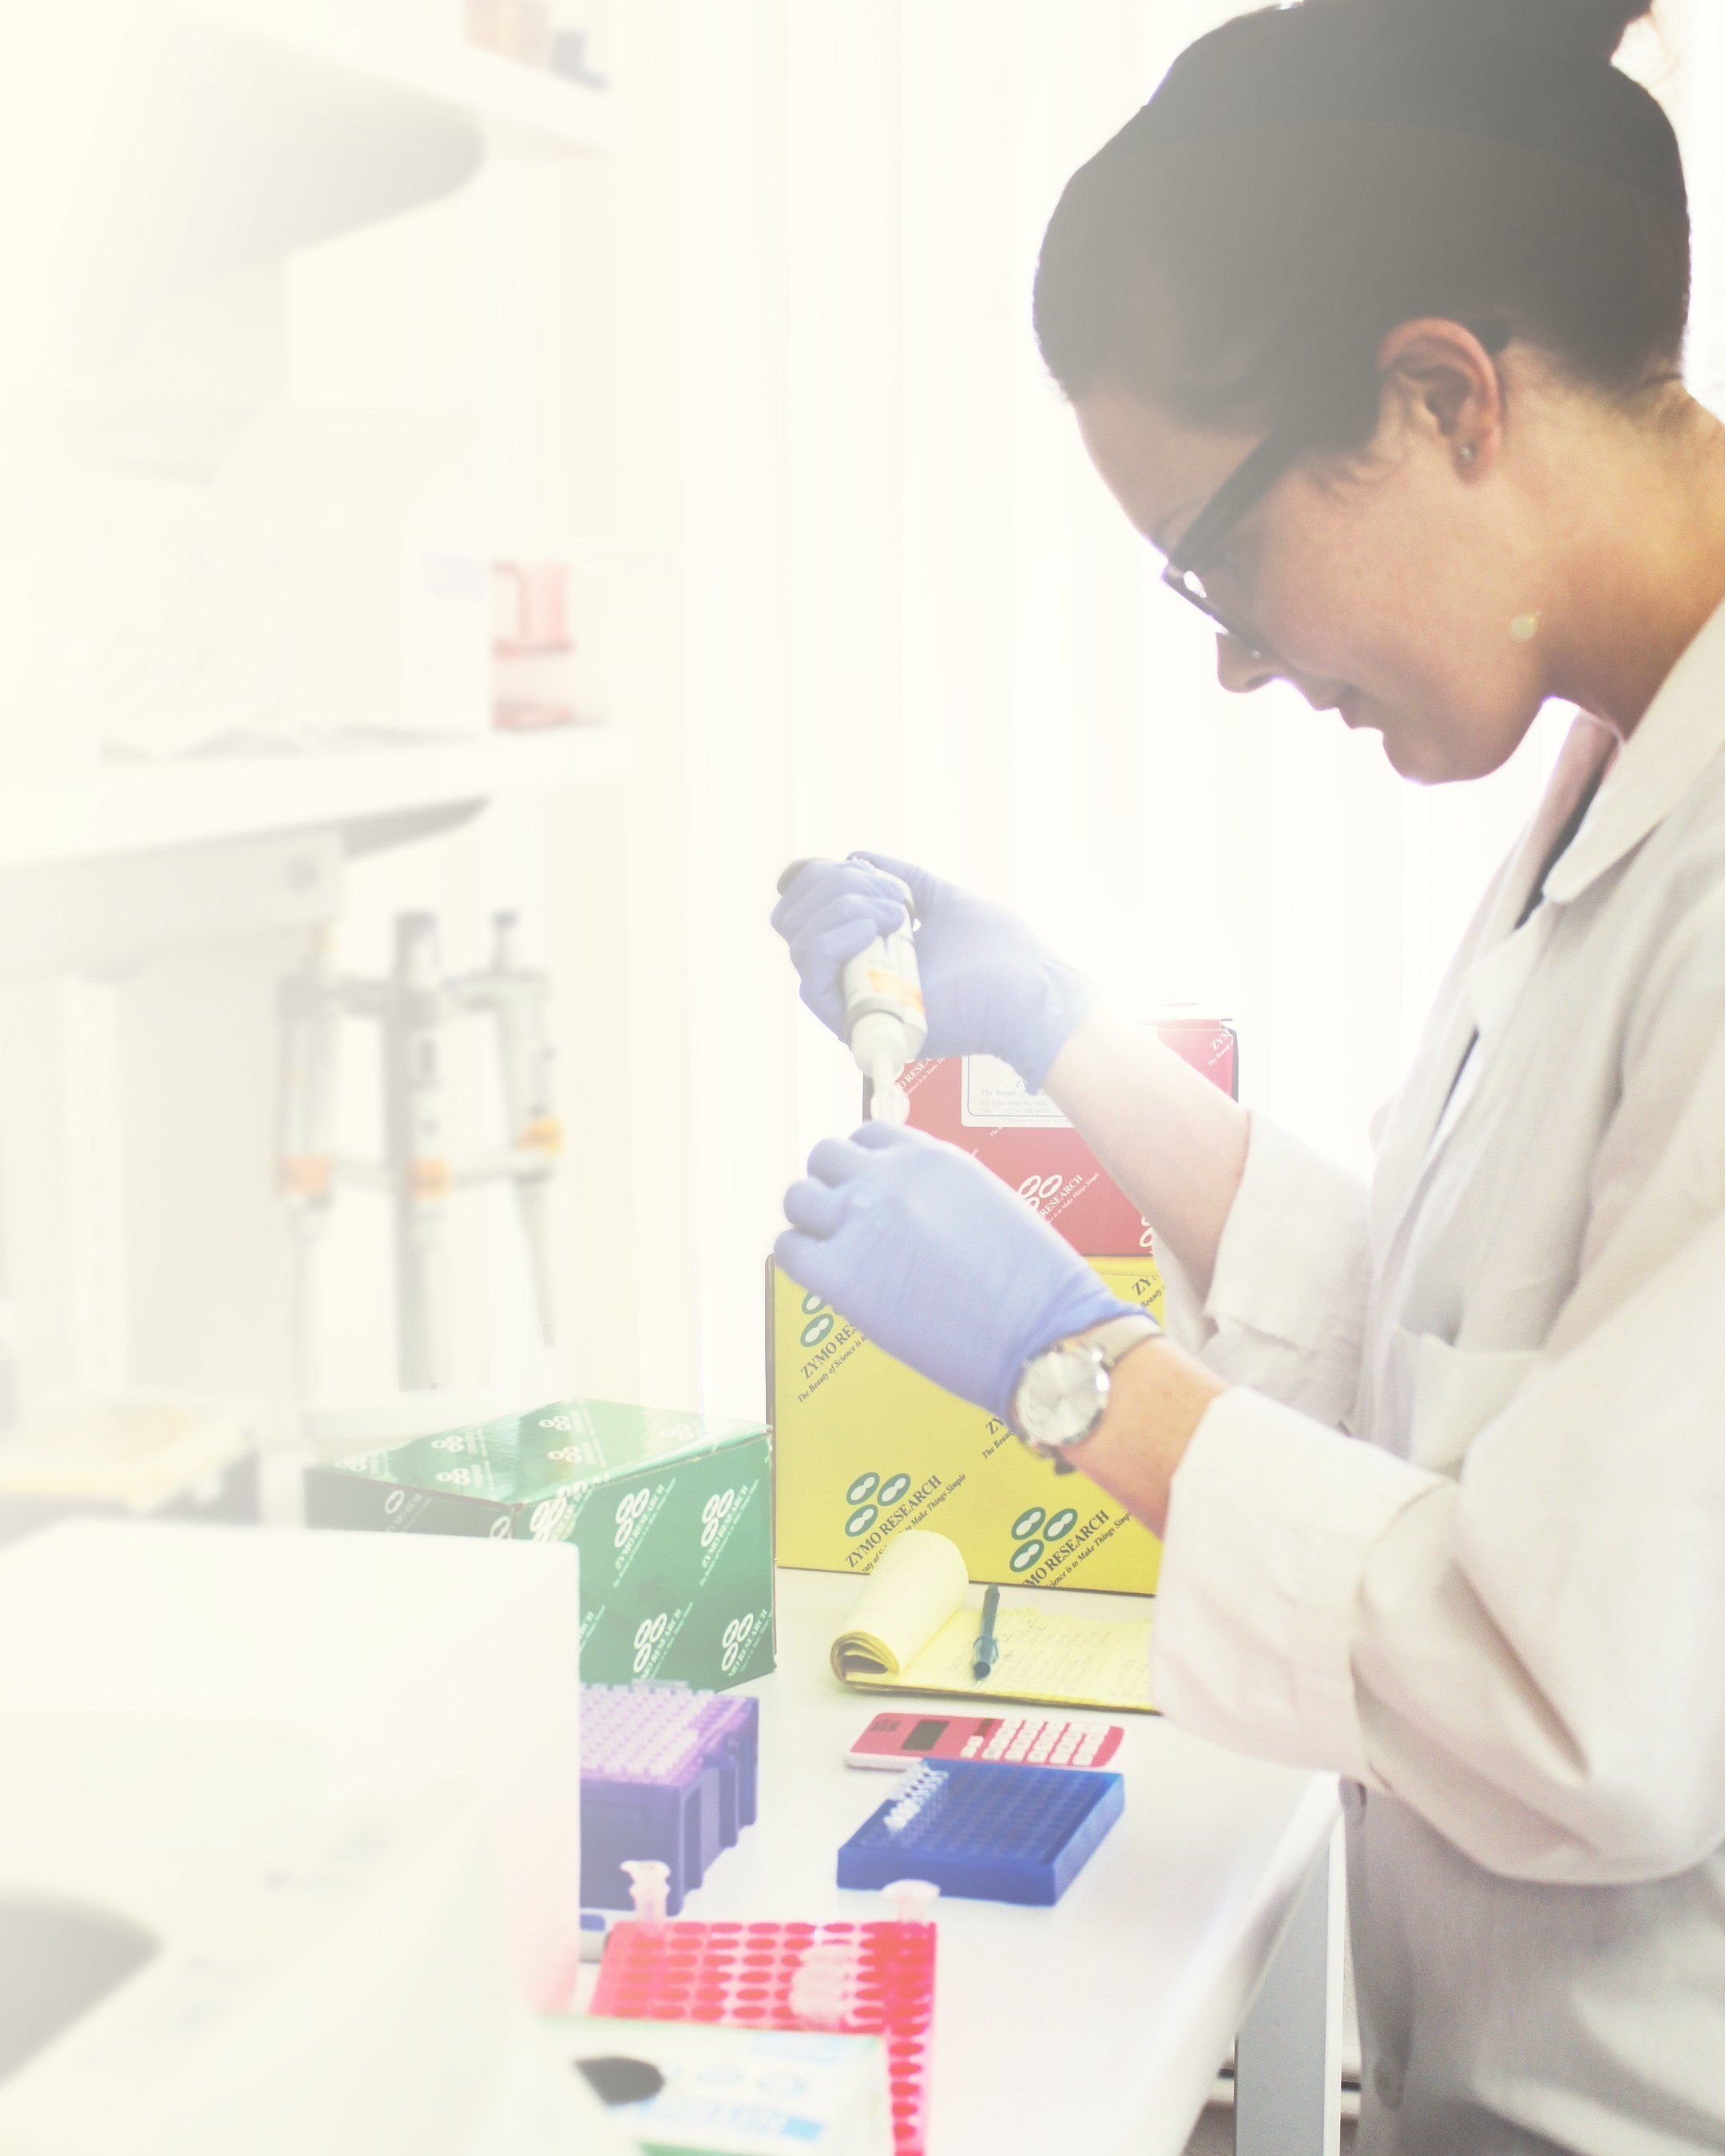 A Zymo Research scientist conducting a test using the new FFPE RNA Kit.